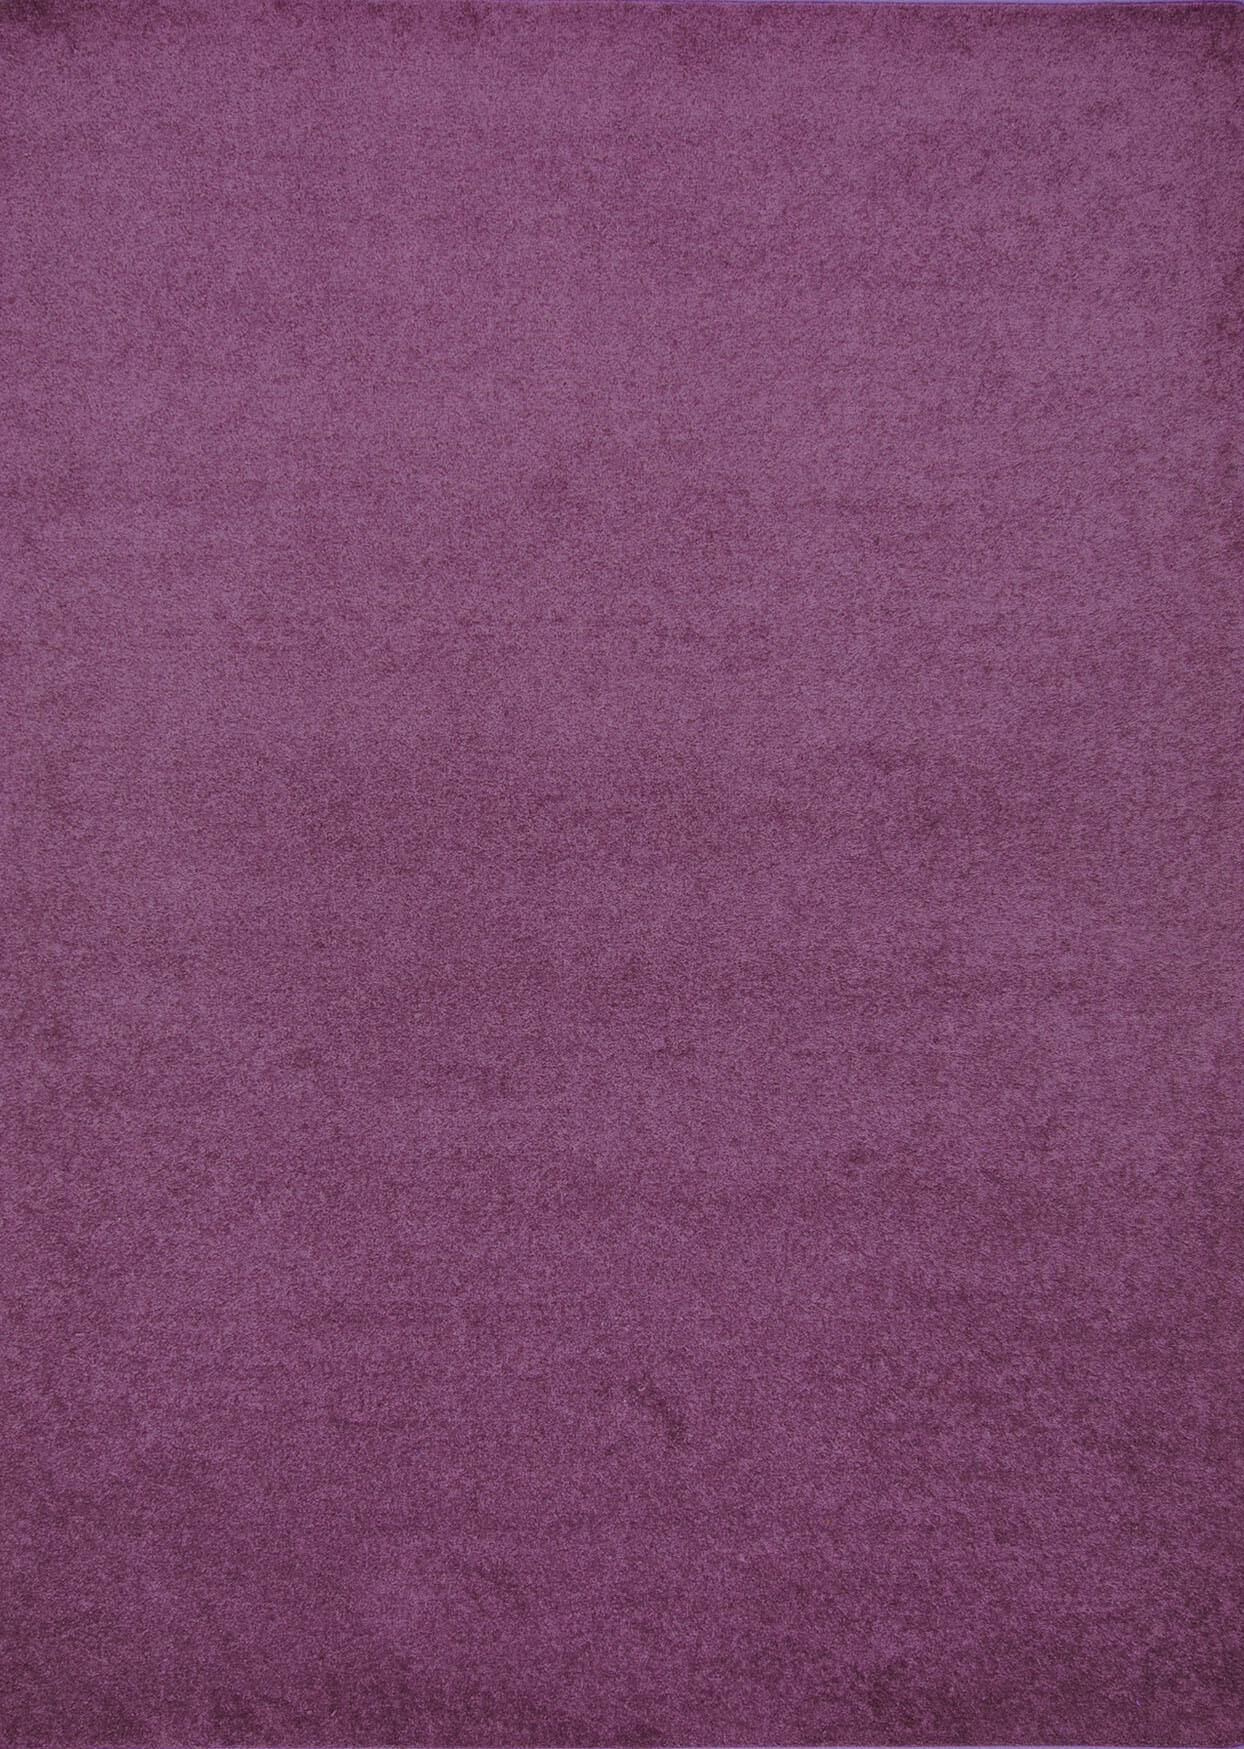 Henley Hand-Tufted Purple Area Rug Rug Size: 5' x 8'